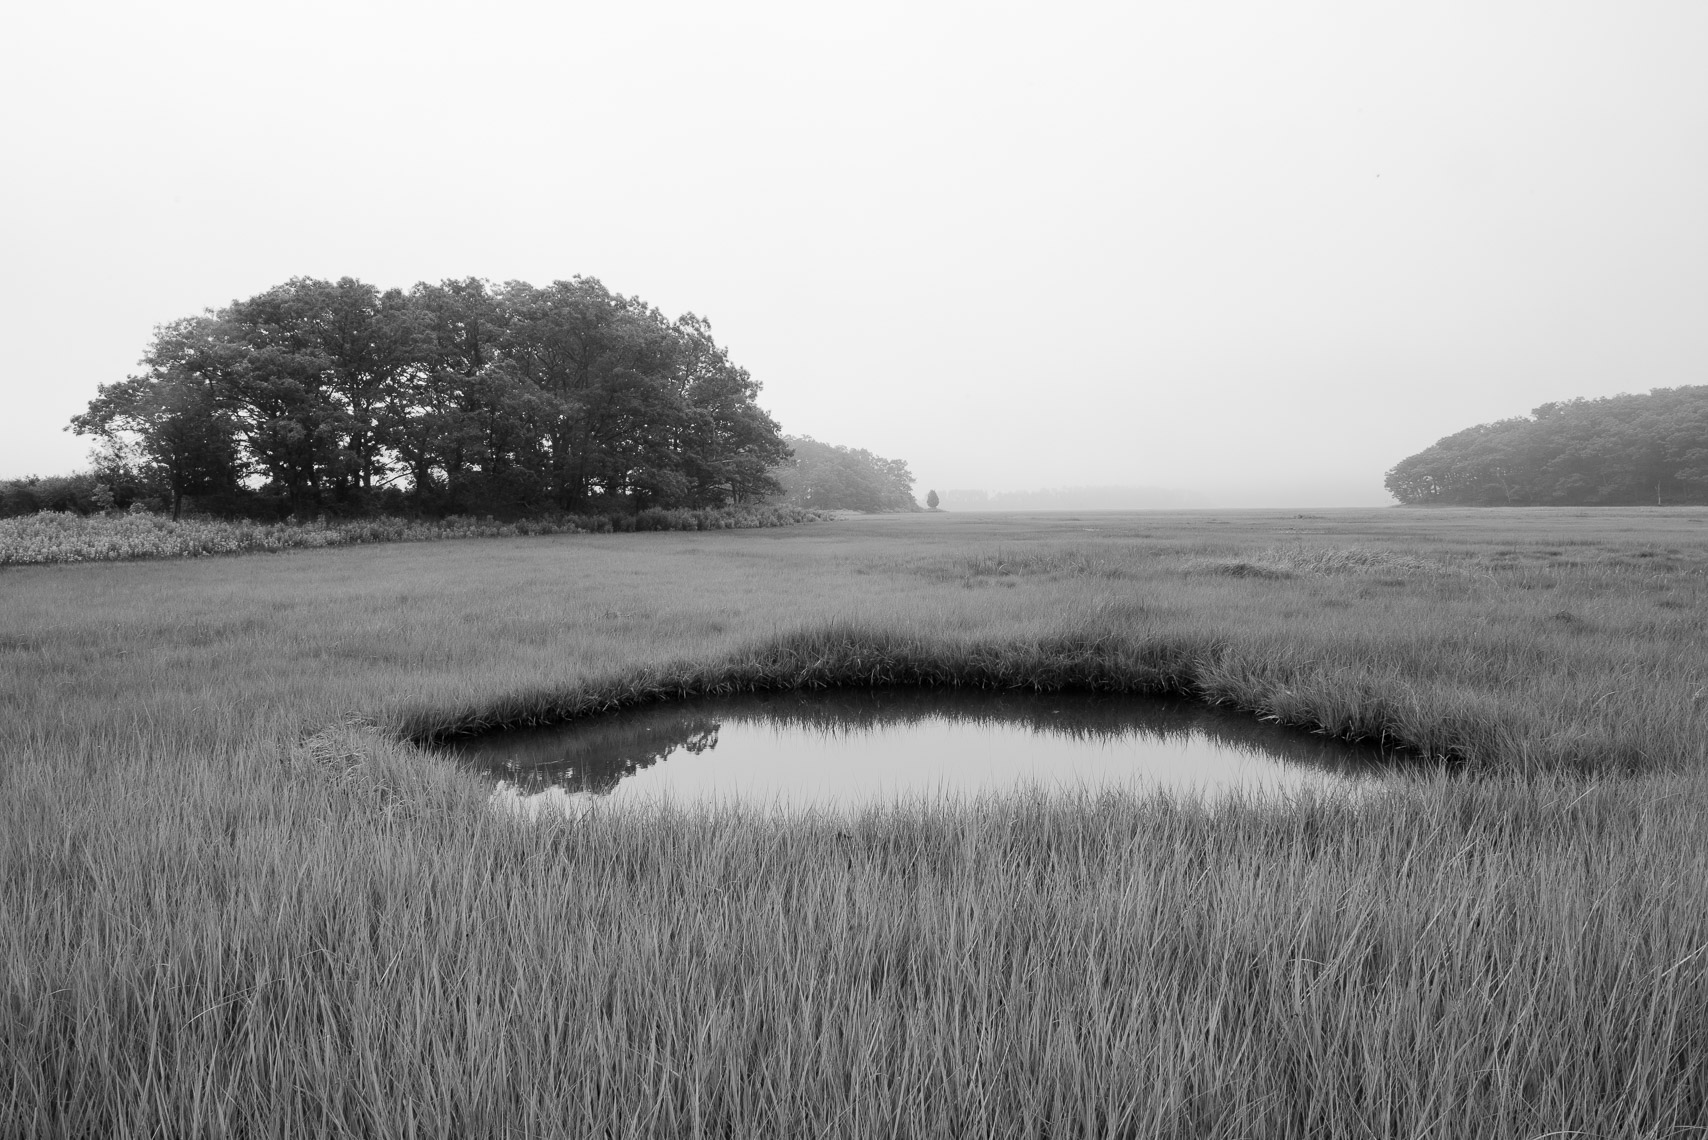 PoolandShadow_GreatMarsh_Ipswich_MA_6-13